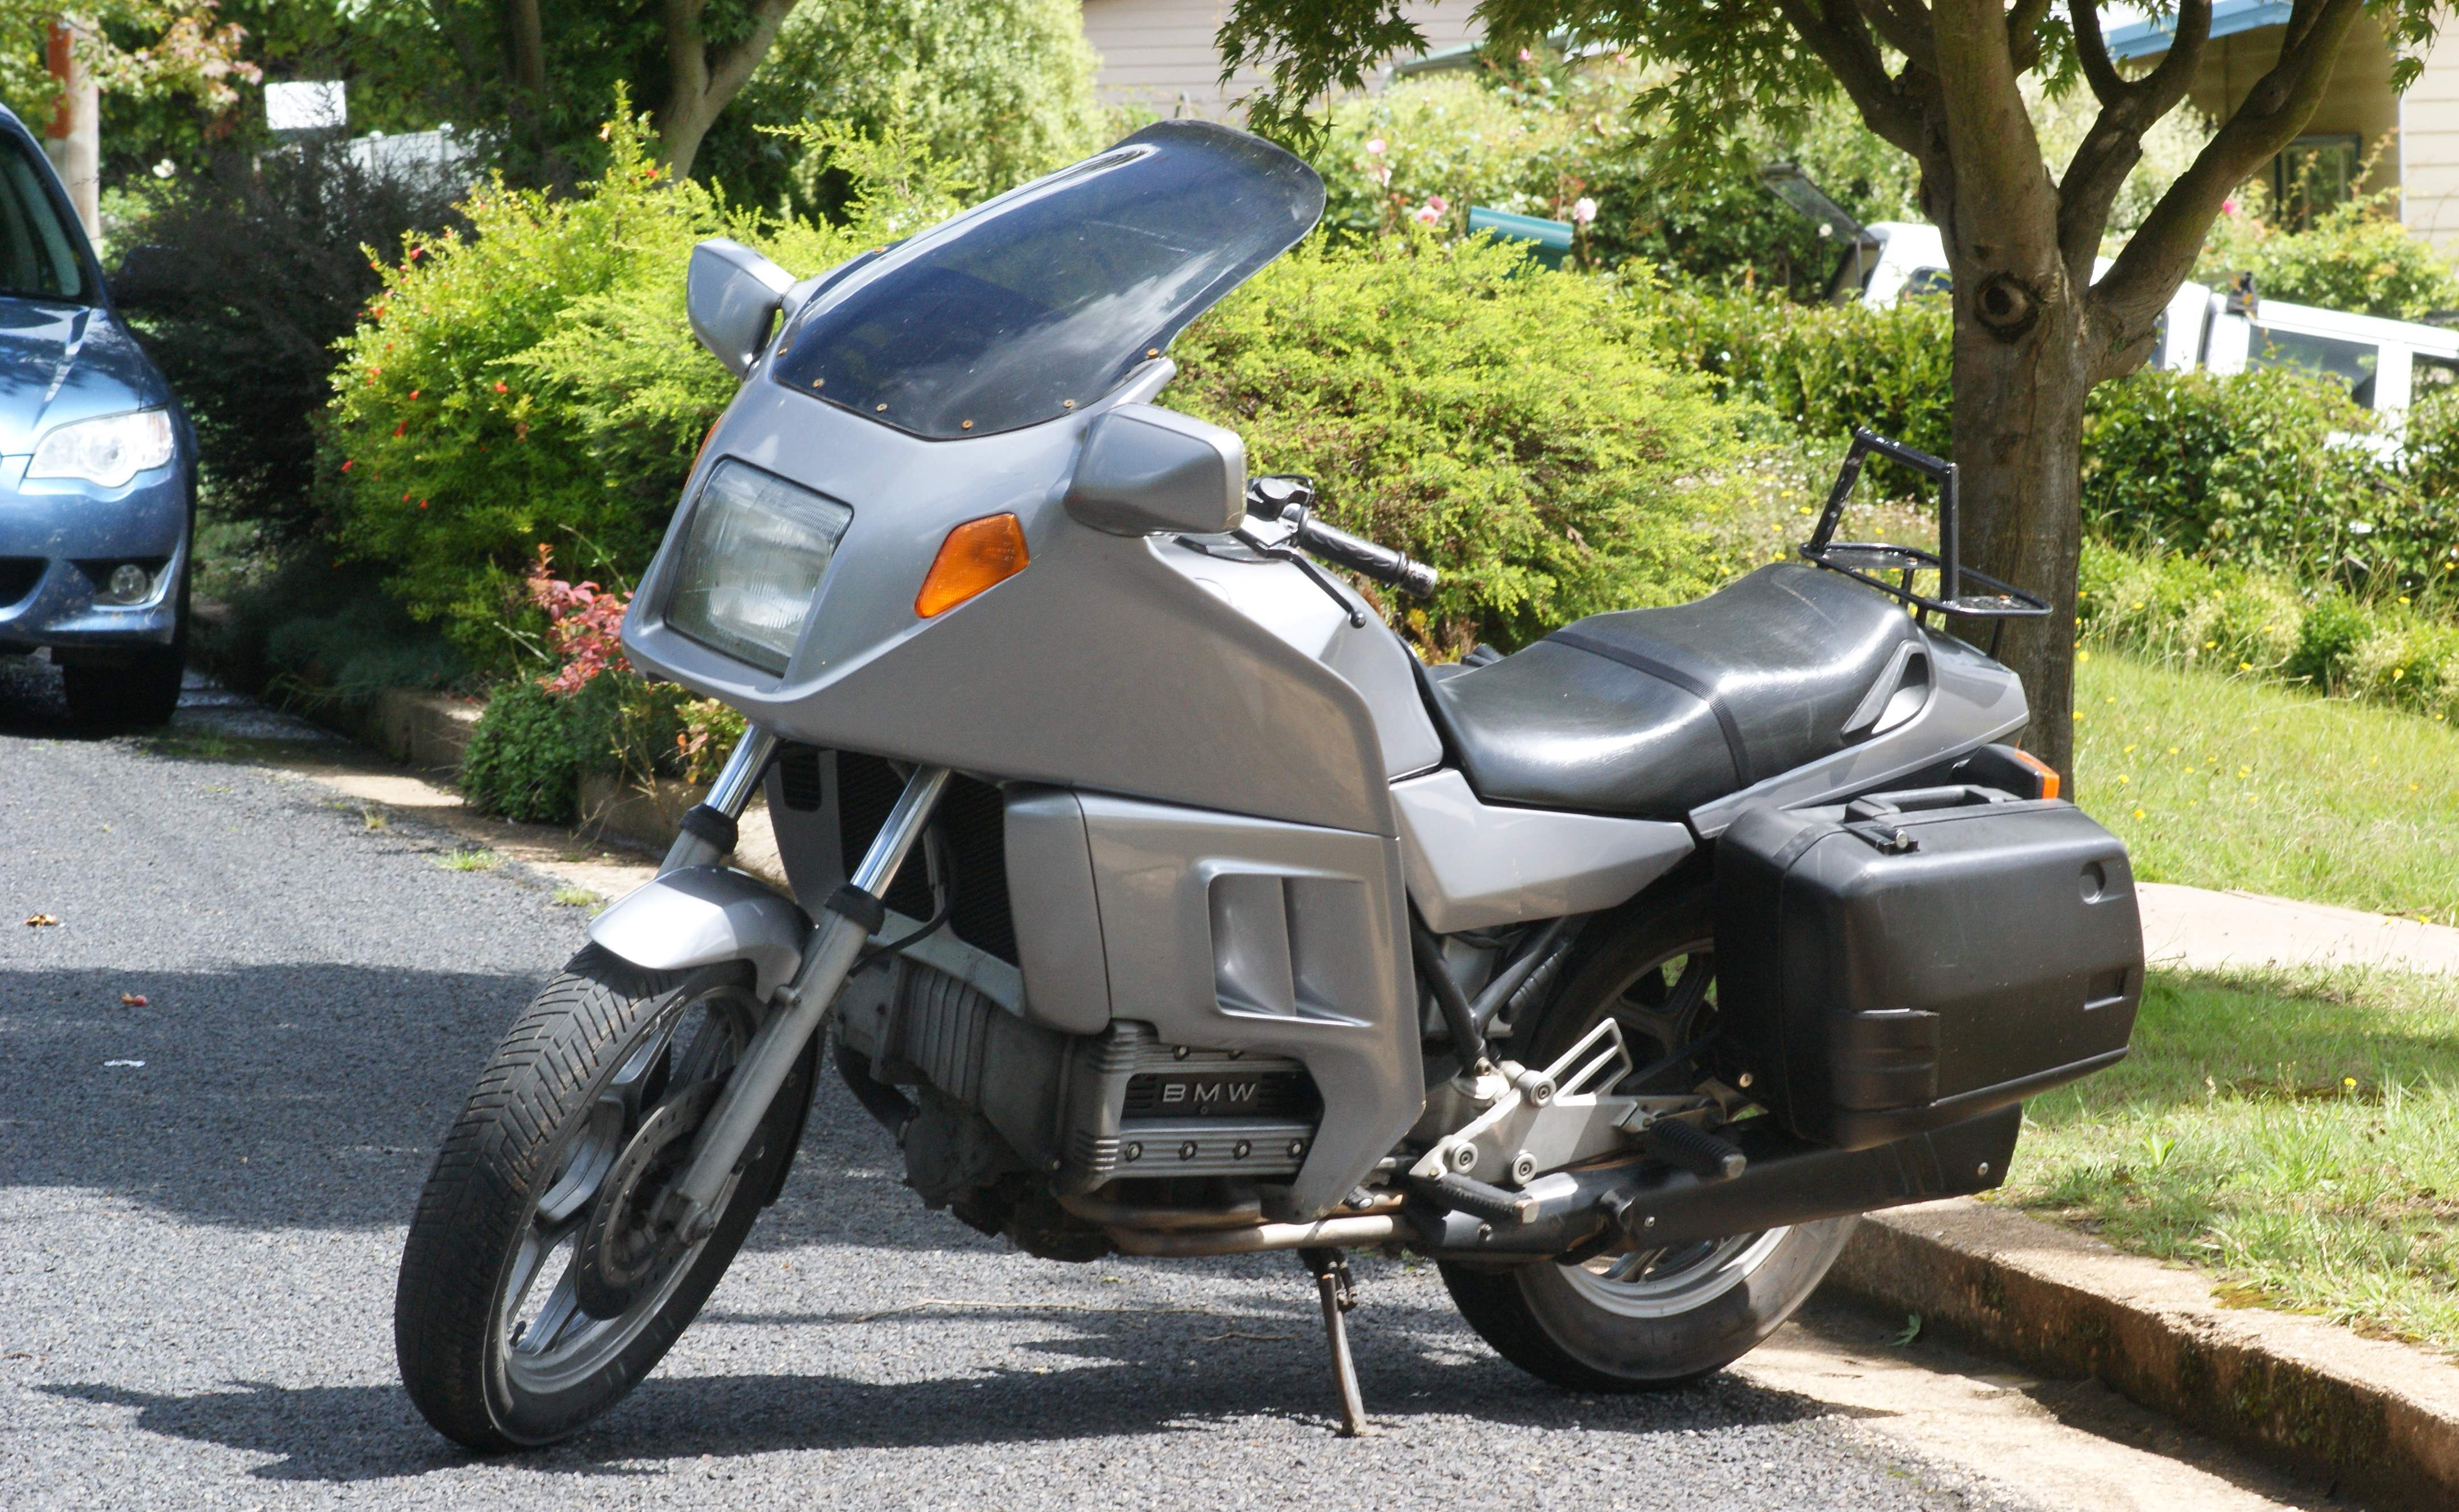 BMW K100RT images #143874